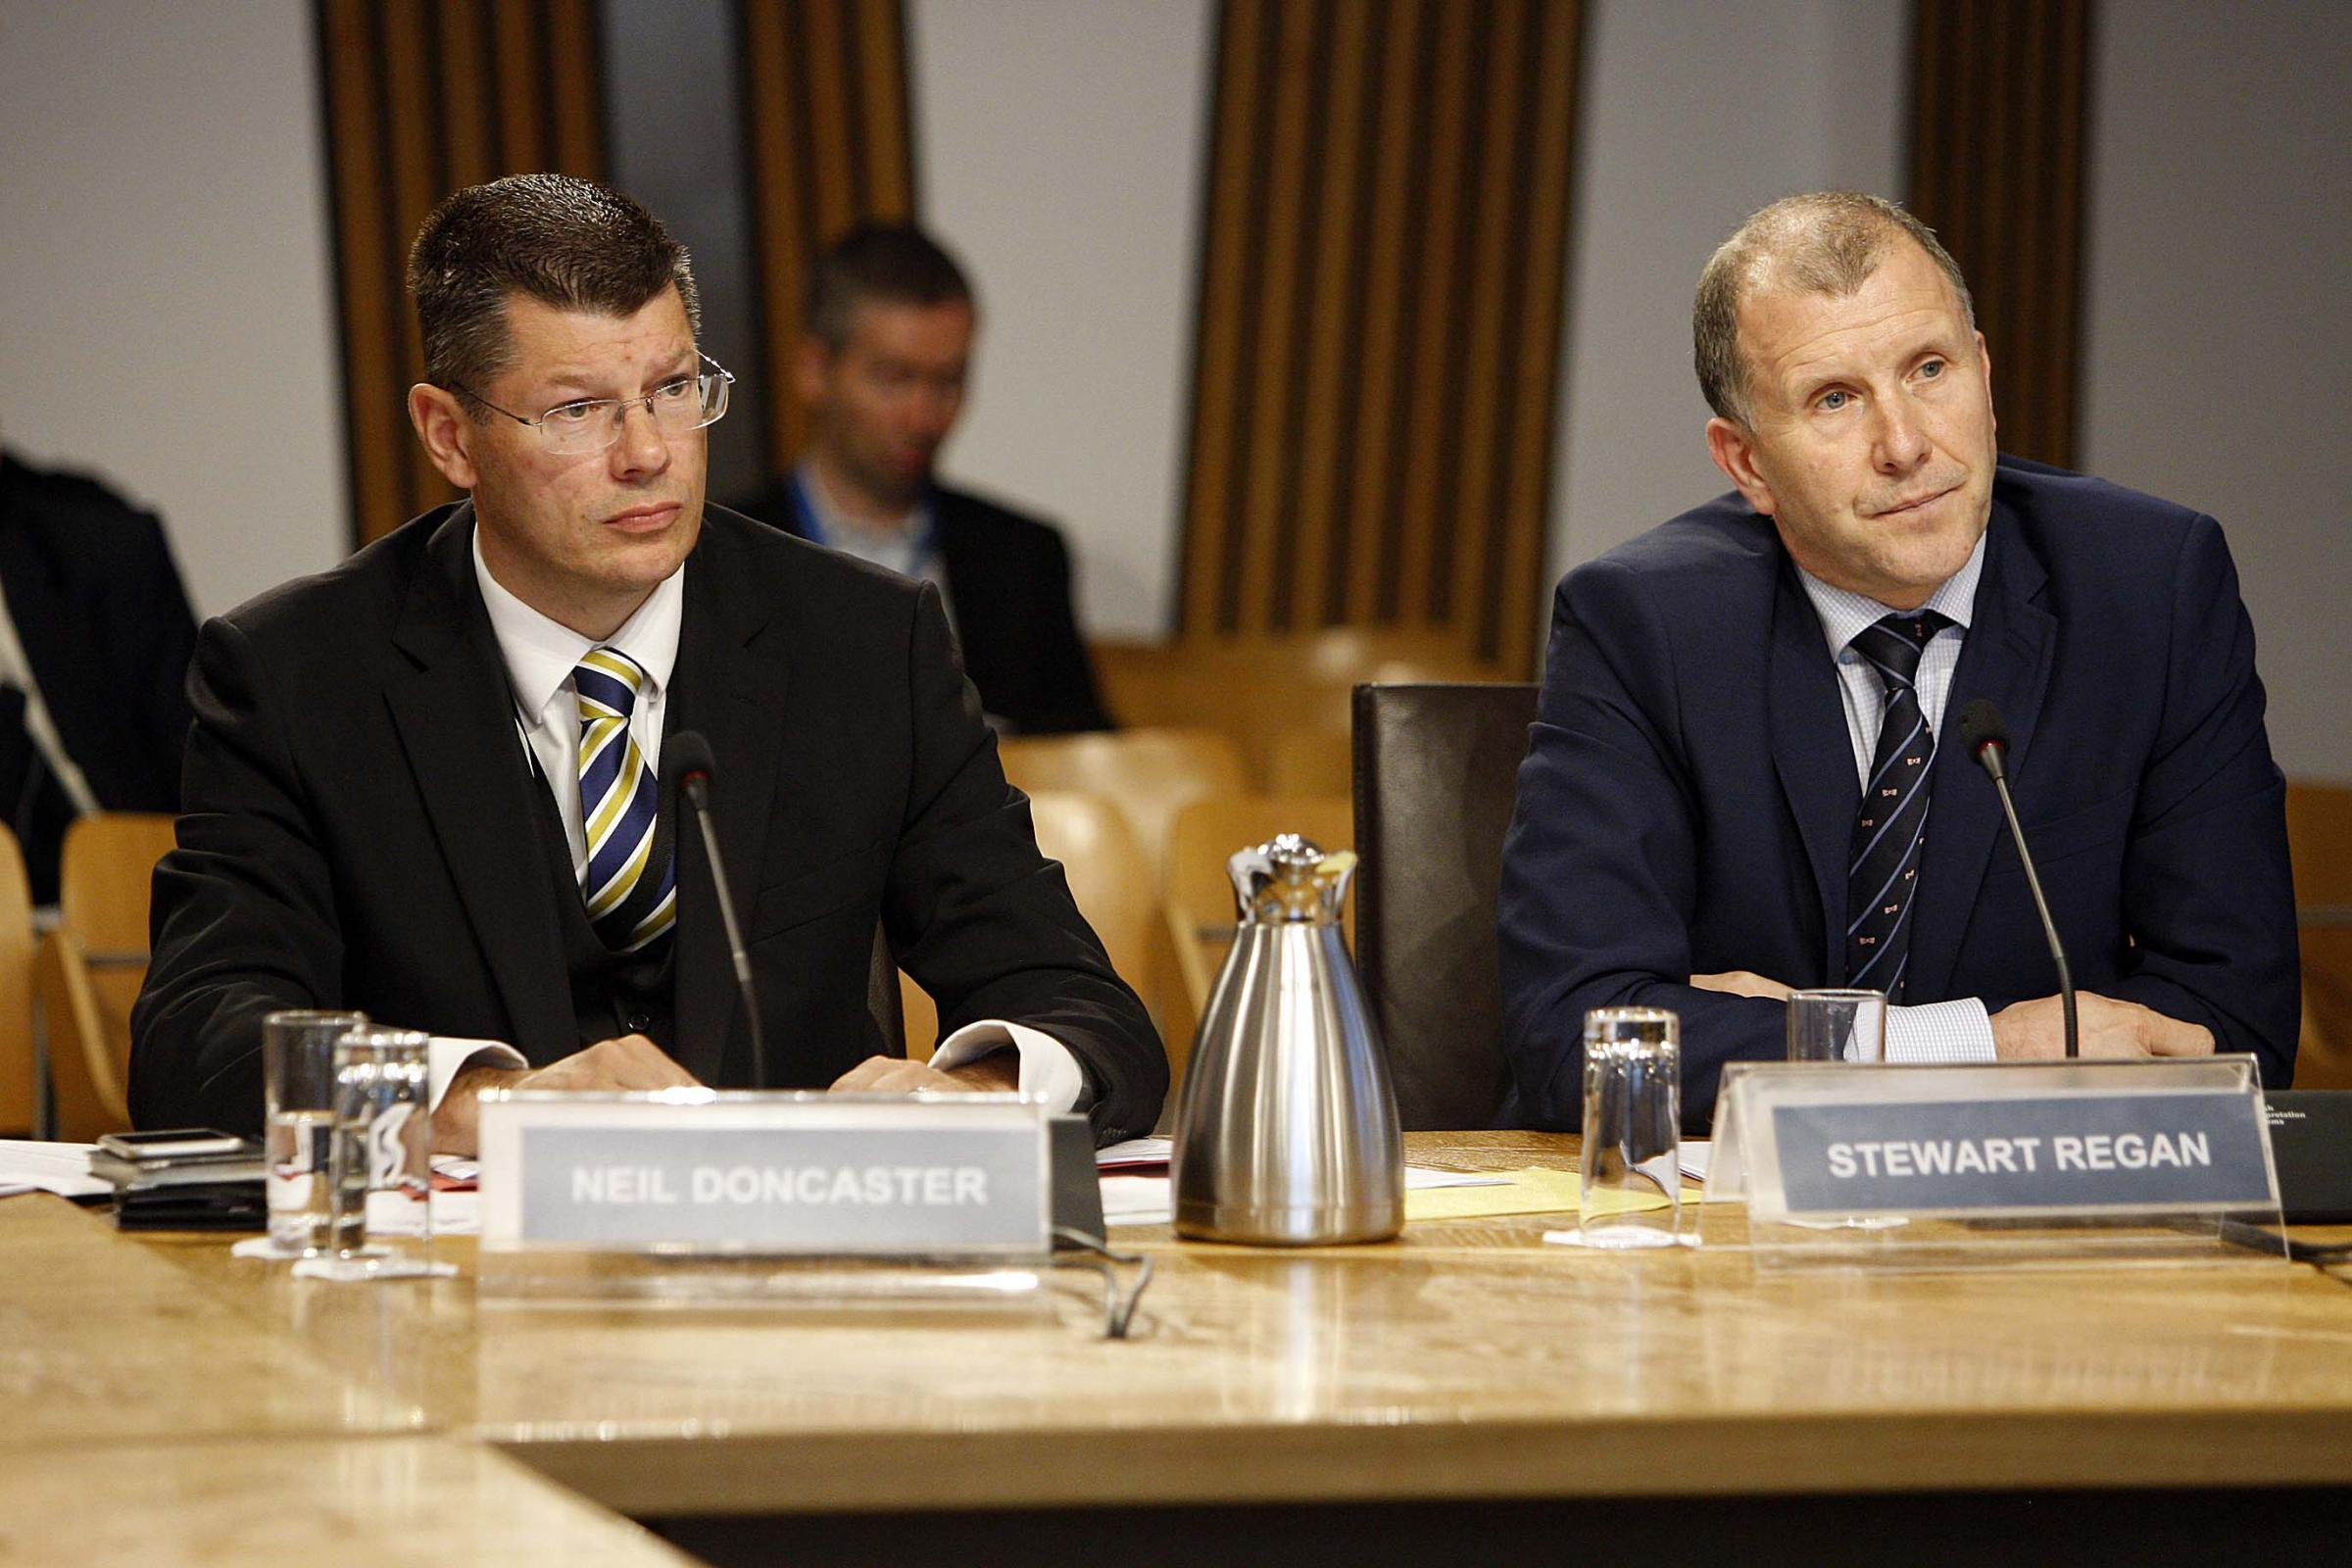 Neil Doncaster, Chief Executive, Scottish Professional Football League, left, and Stewart Regan, Chief Executive, Scottish Football Association, right